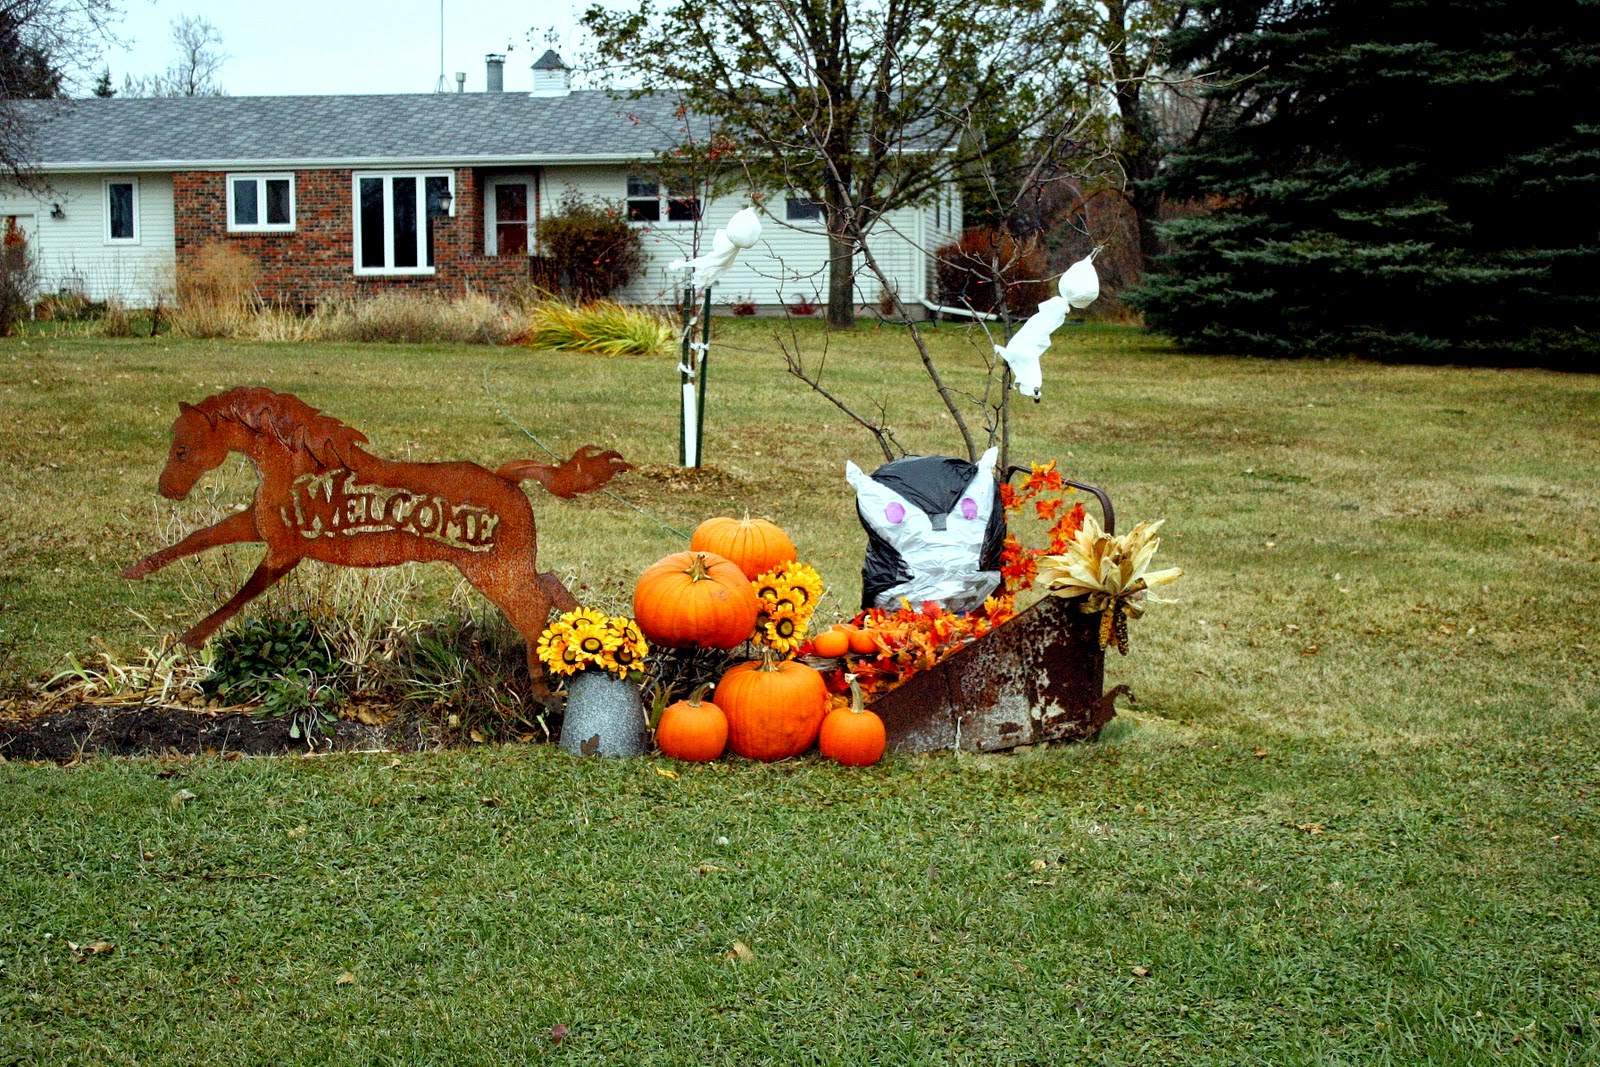 Outdoor fall decorating ideas yard instant knowledge for Pictures of fall decorations for the yard